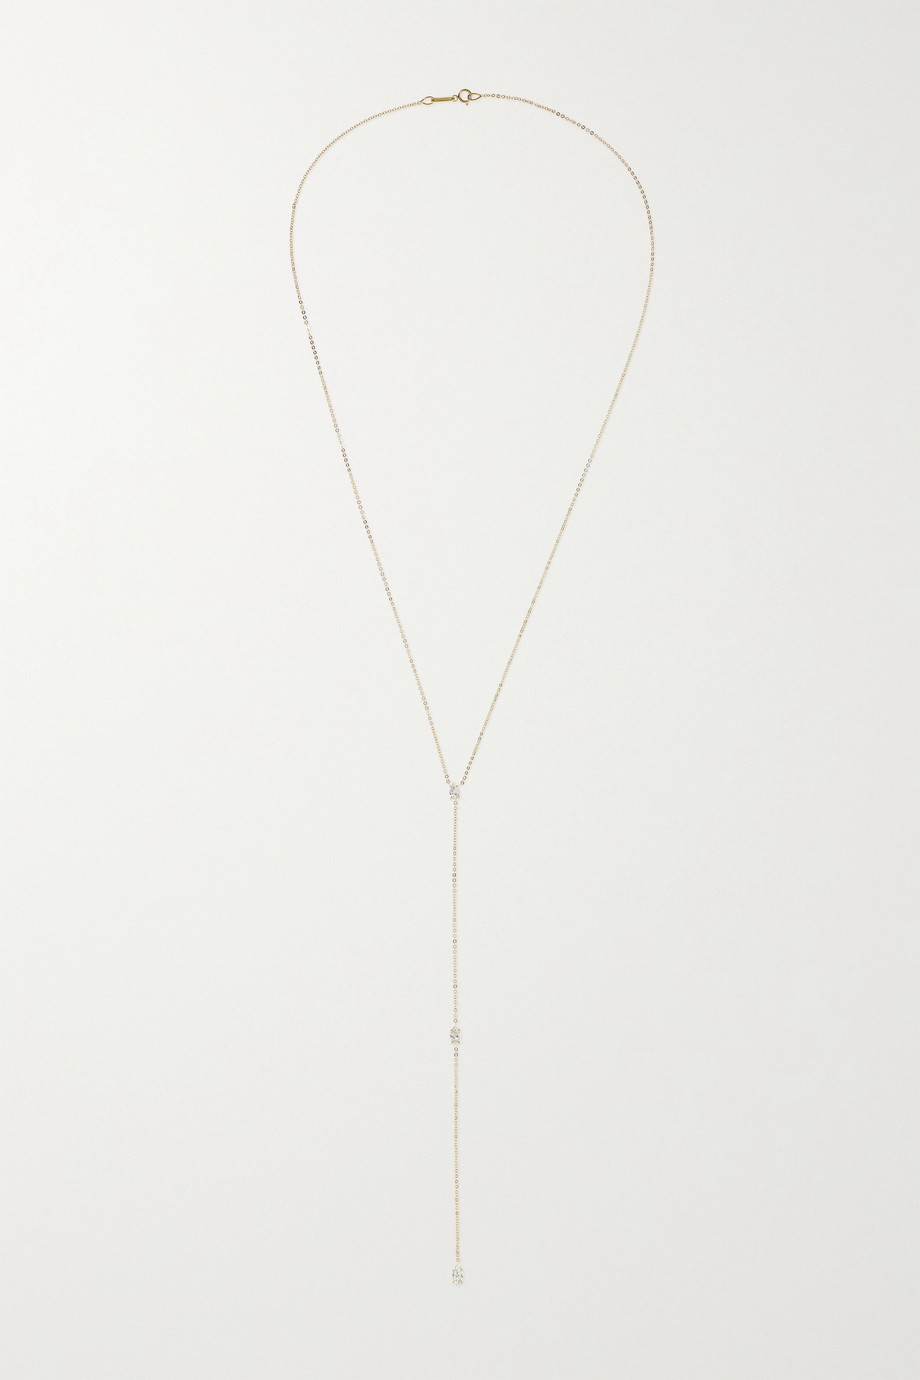 Anita Ko 18-karat gold diamond necklace